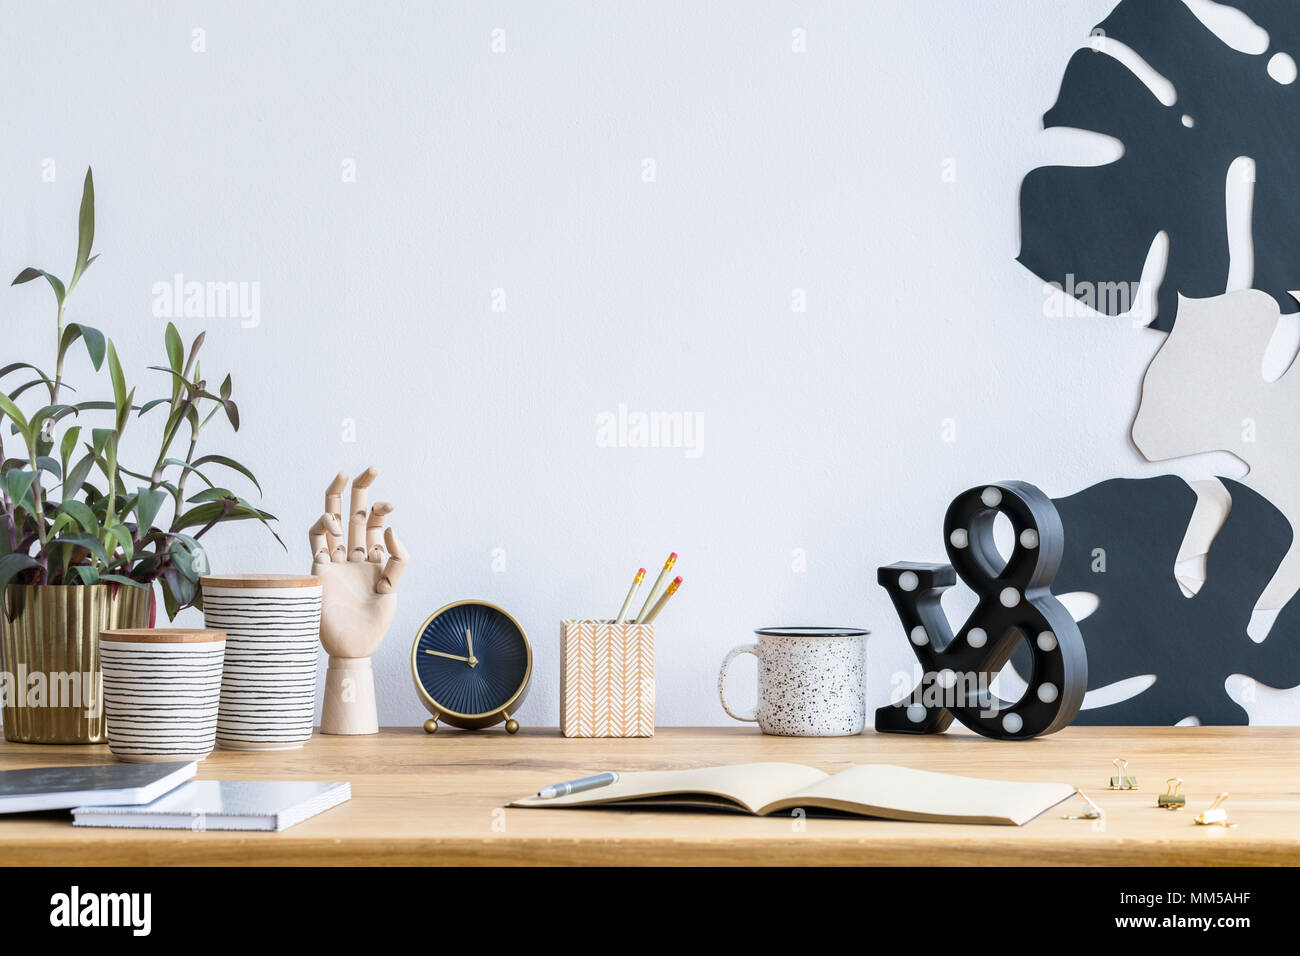 Messy desk with a plant in a golden pot, wooden hand, clock and leaves on the wall - Stock Image